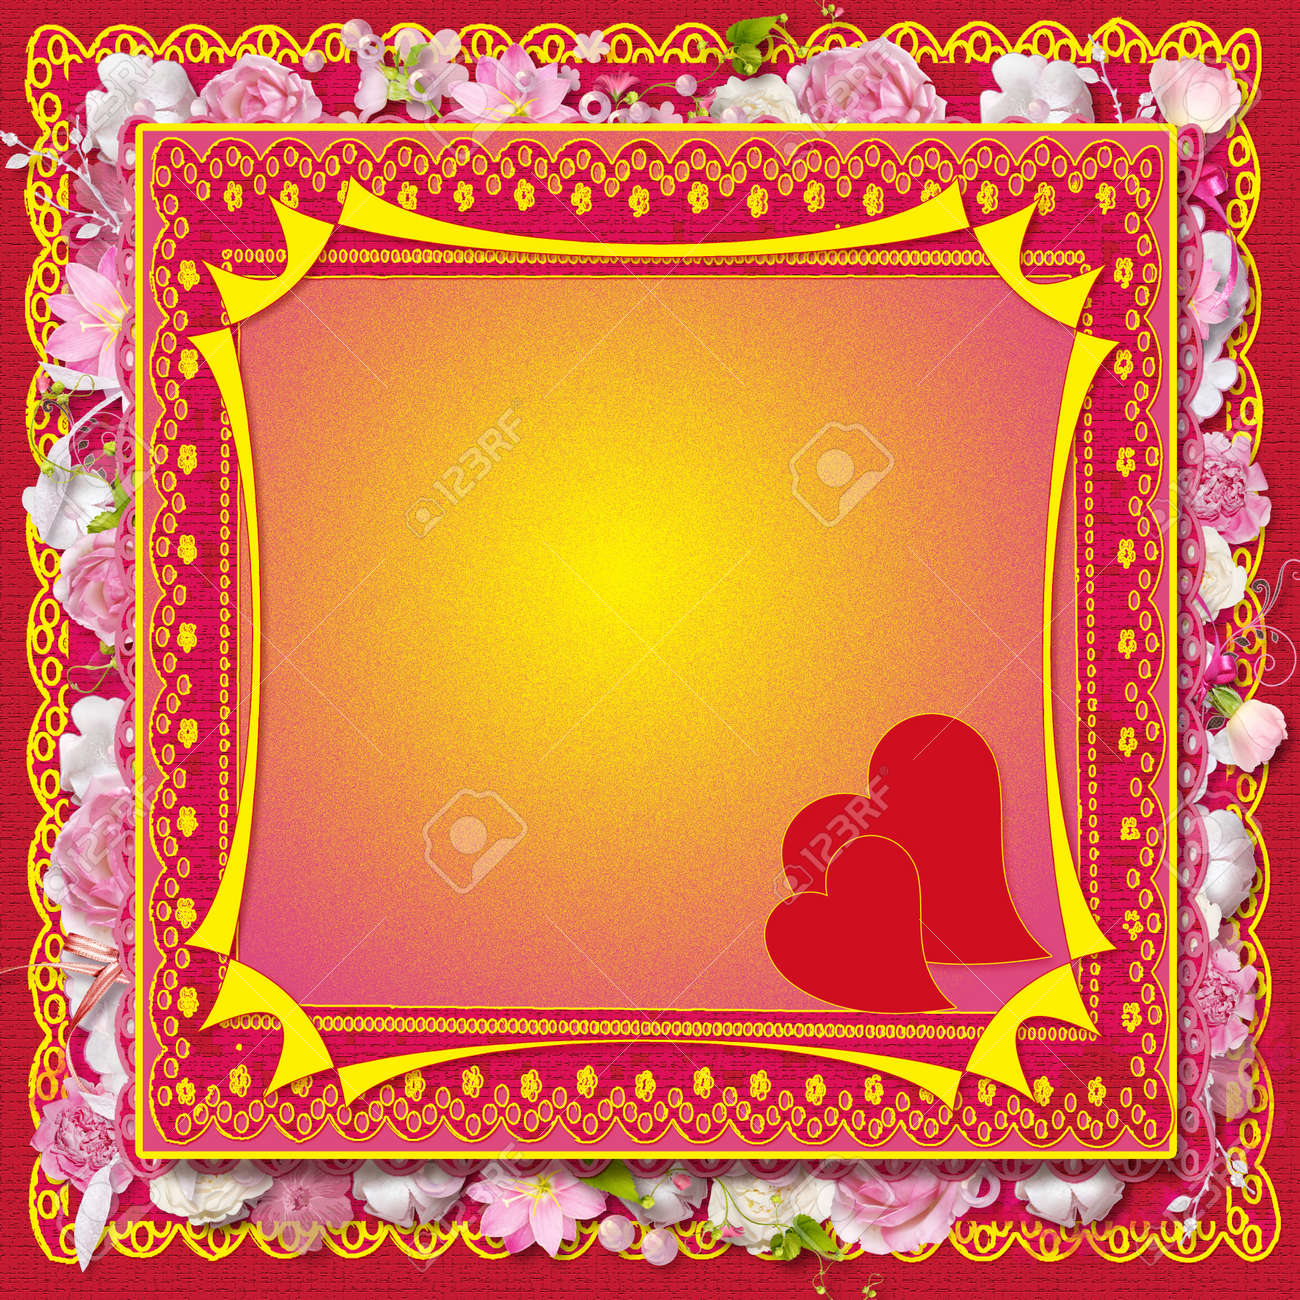 pink floral greeting card with hearts for Valentine s Day Stock Photo - 16904511